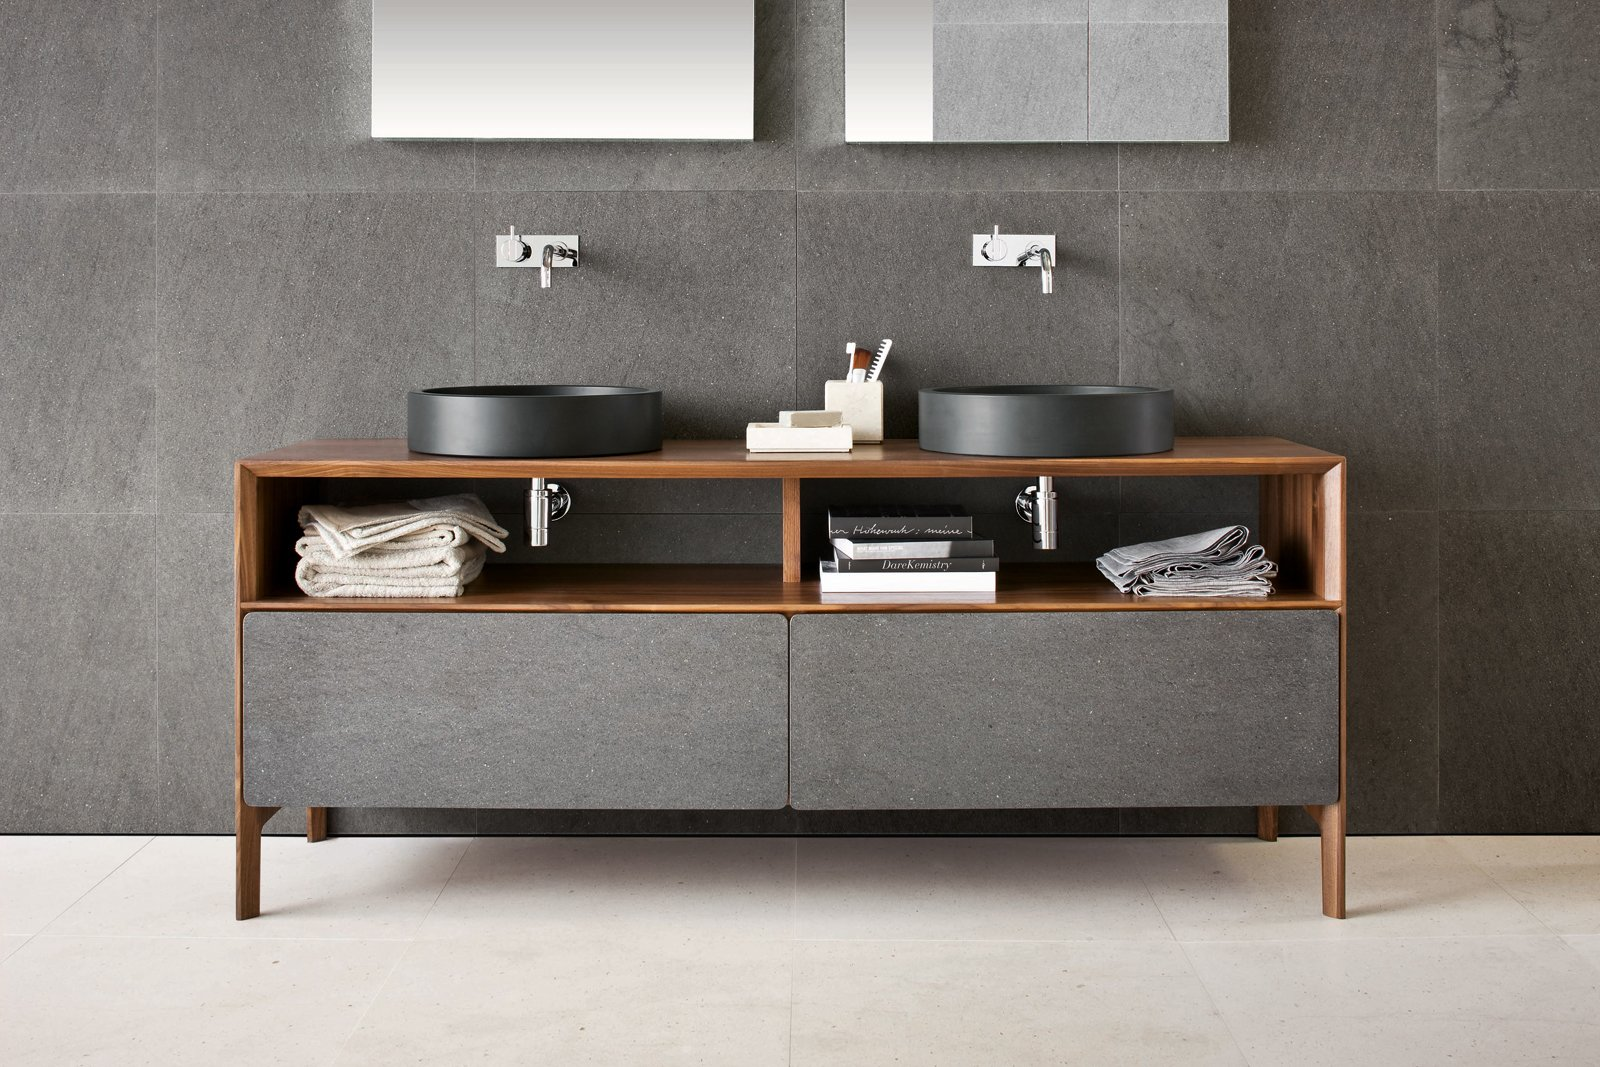 Bath Room, Wood Counter, and Vessel Sink Inkstone wash-basins in Black Rock stone with Neos furniture, made from solid-walnut with Basaltina stone fronts (Neos furniture designed by Luca Martorano).  Best Photos from Inky Inspiration